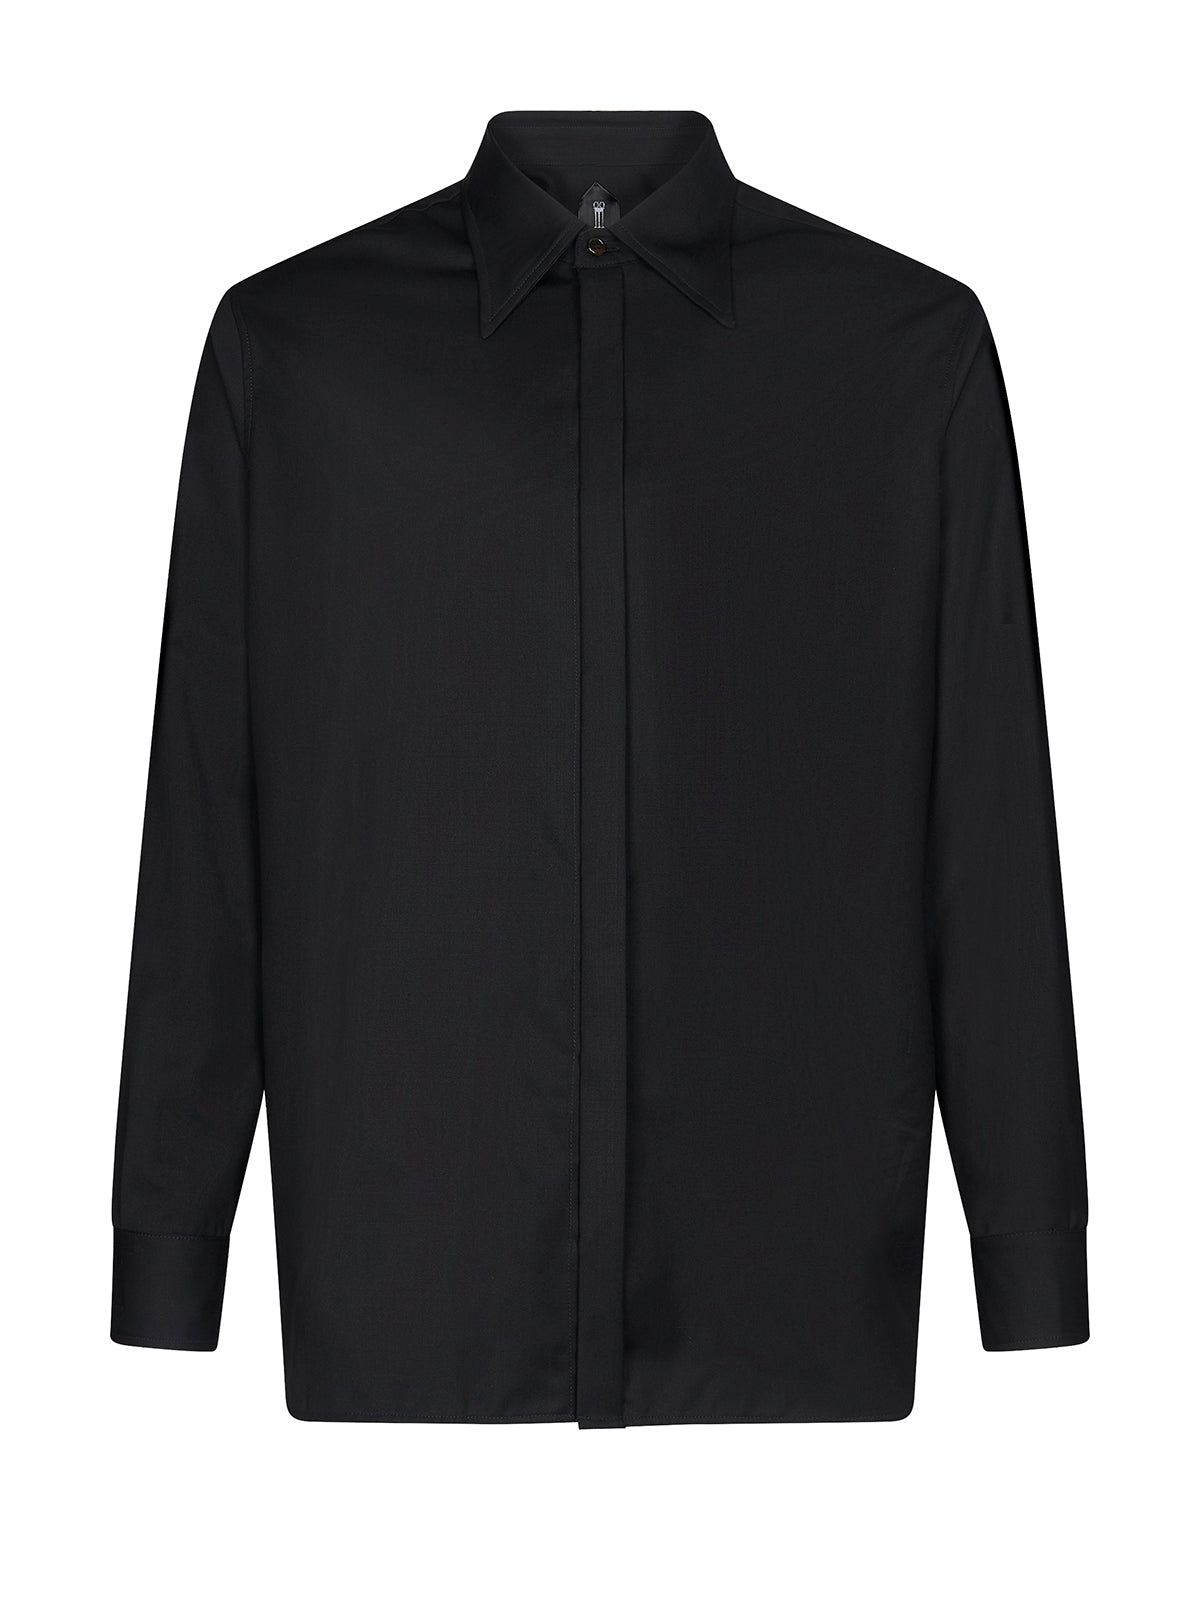 Ikarus shirt in black